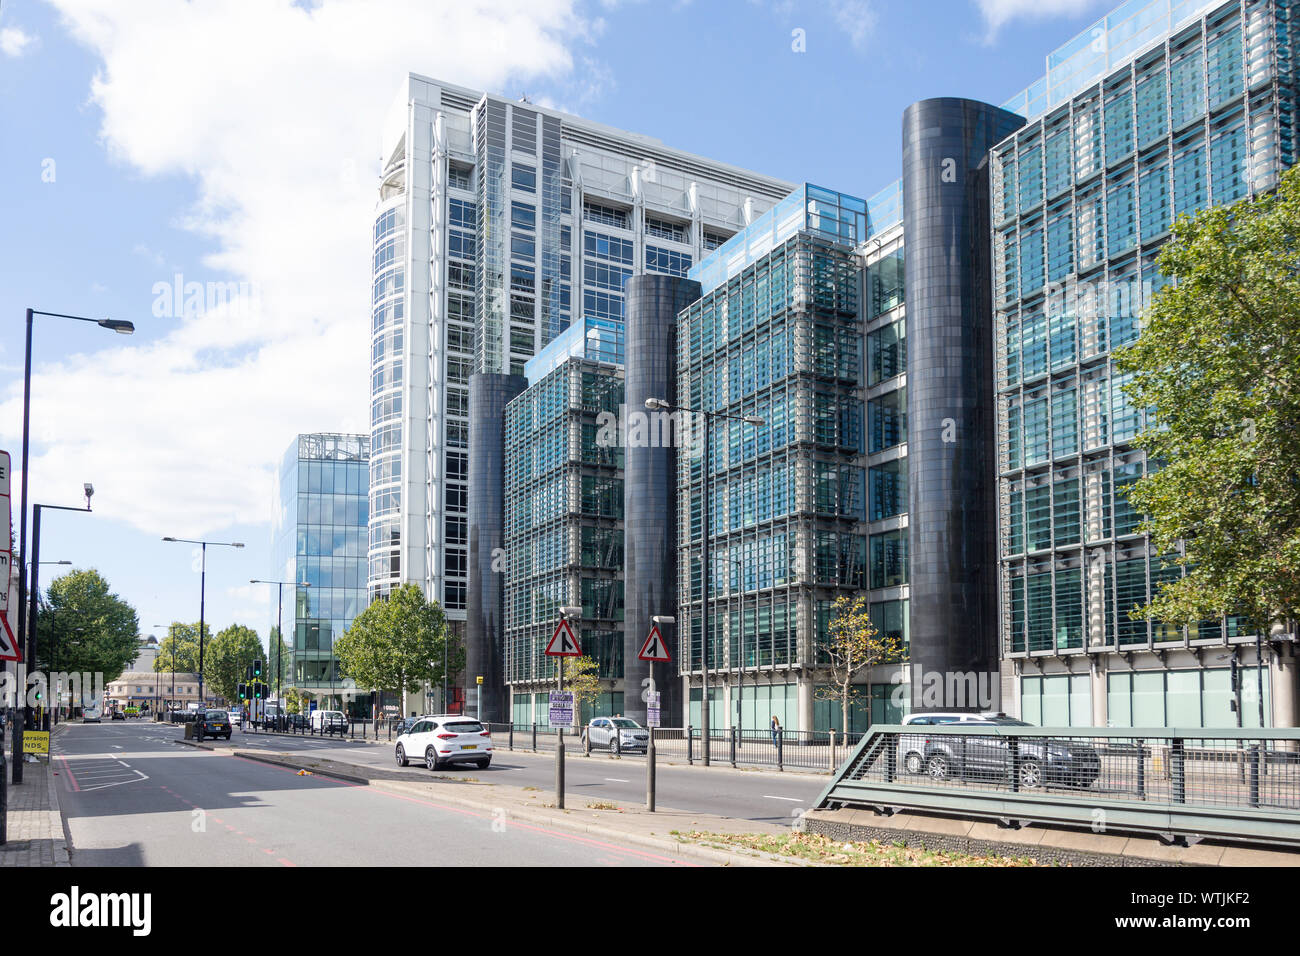 Regent's Place, Euston Road, Fitzrovia, London Borough of Camden, Greater London, England, United Kingdom Stock Photo